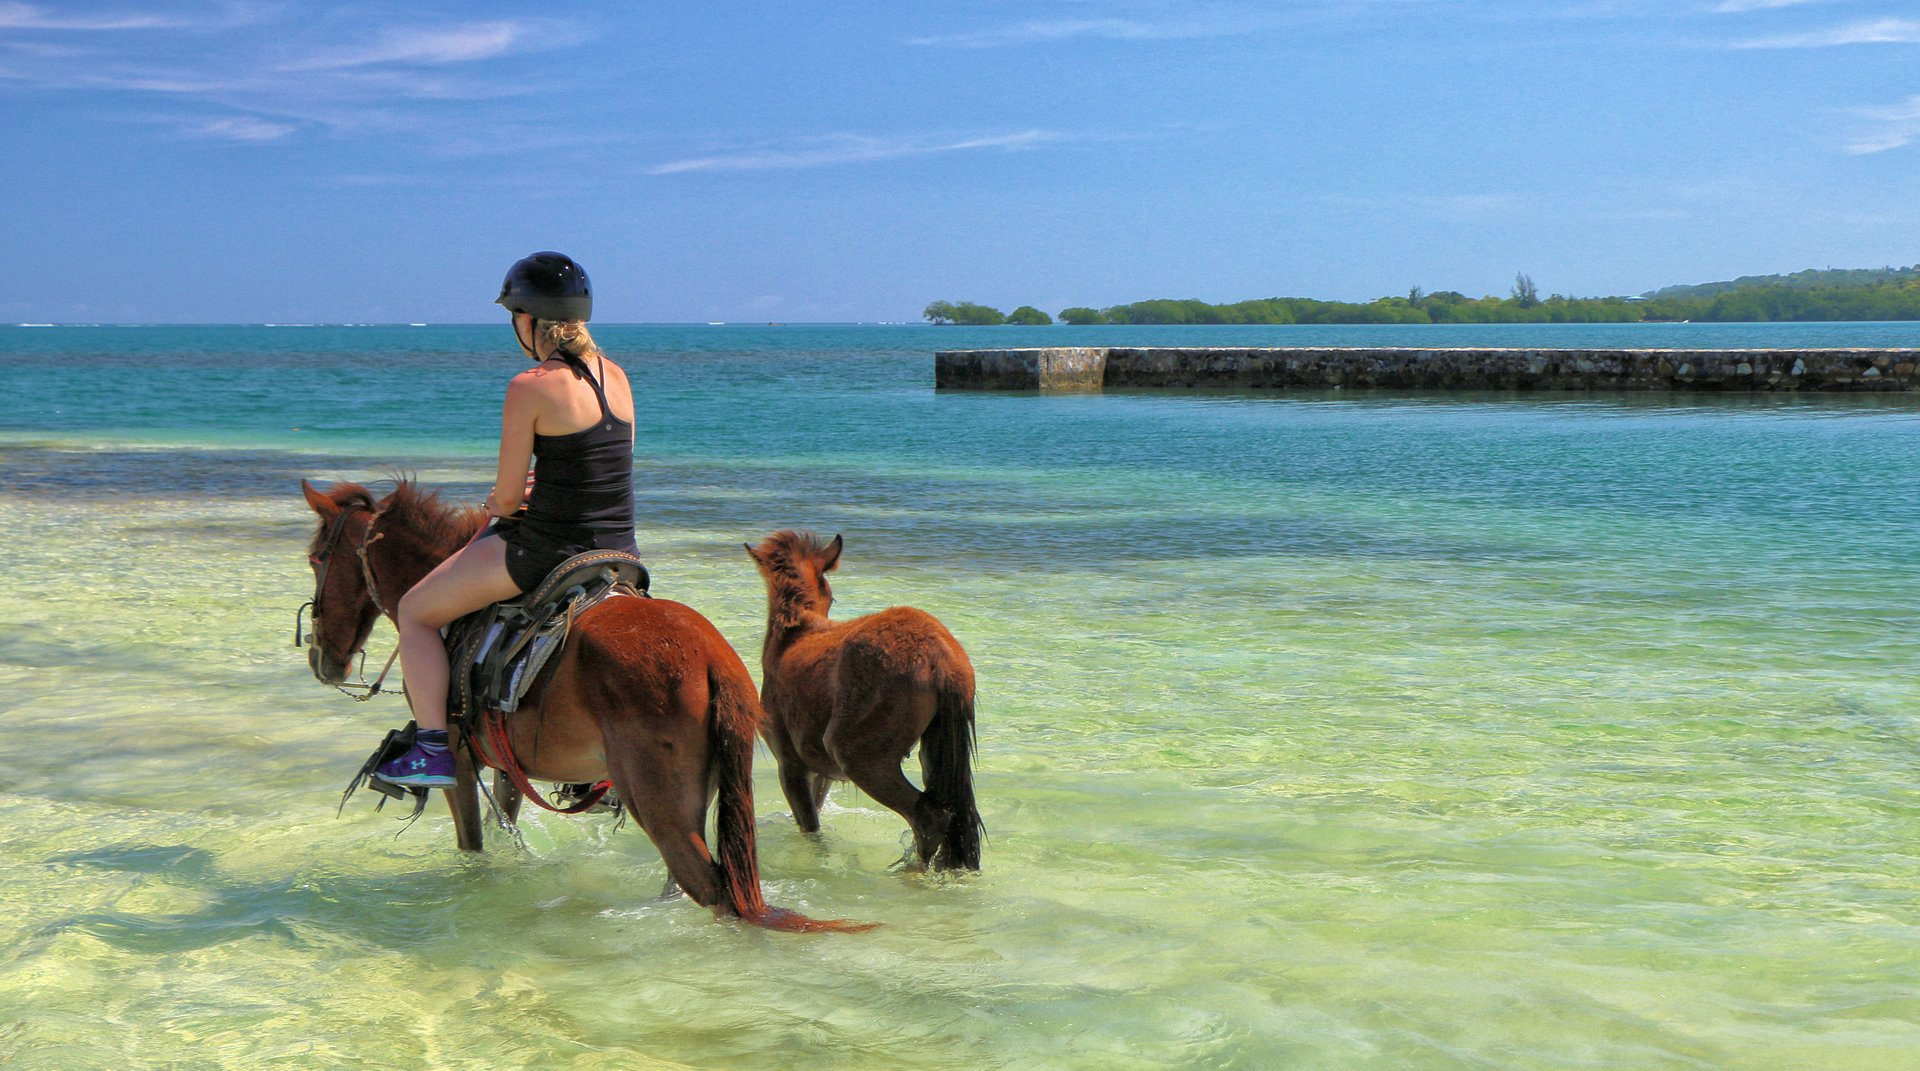 Best time to see Horseback Riding on Roatán in Honduras 2020